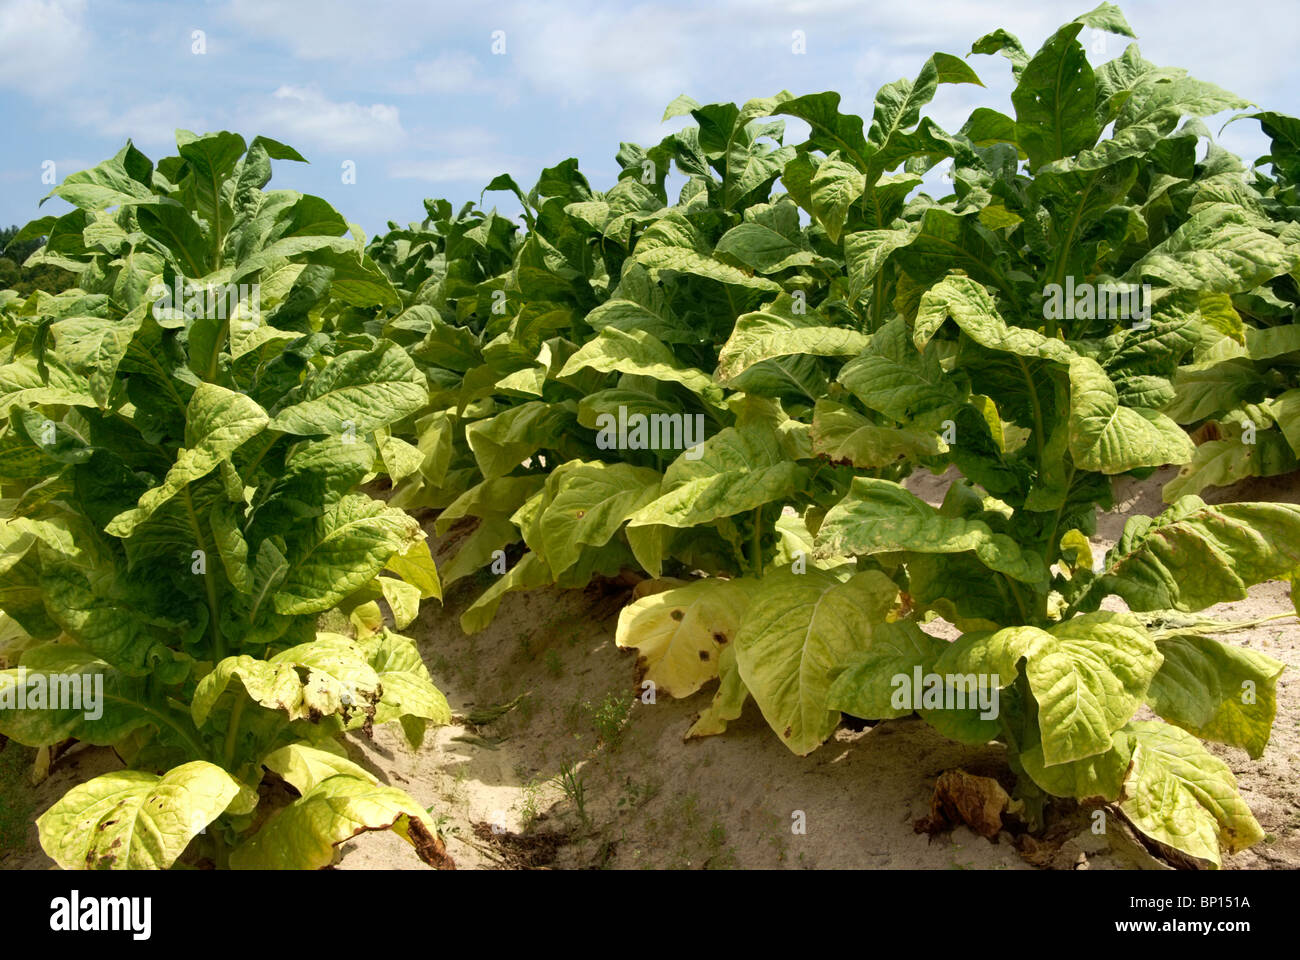 Tobacco plants - Stock Image